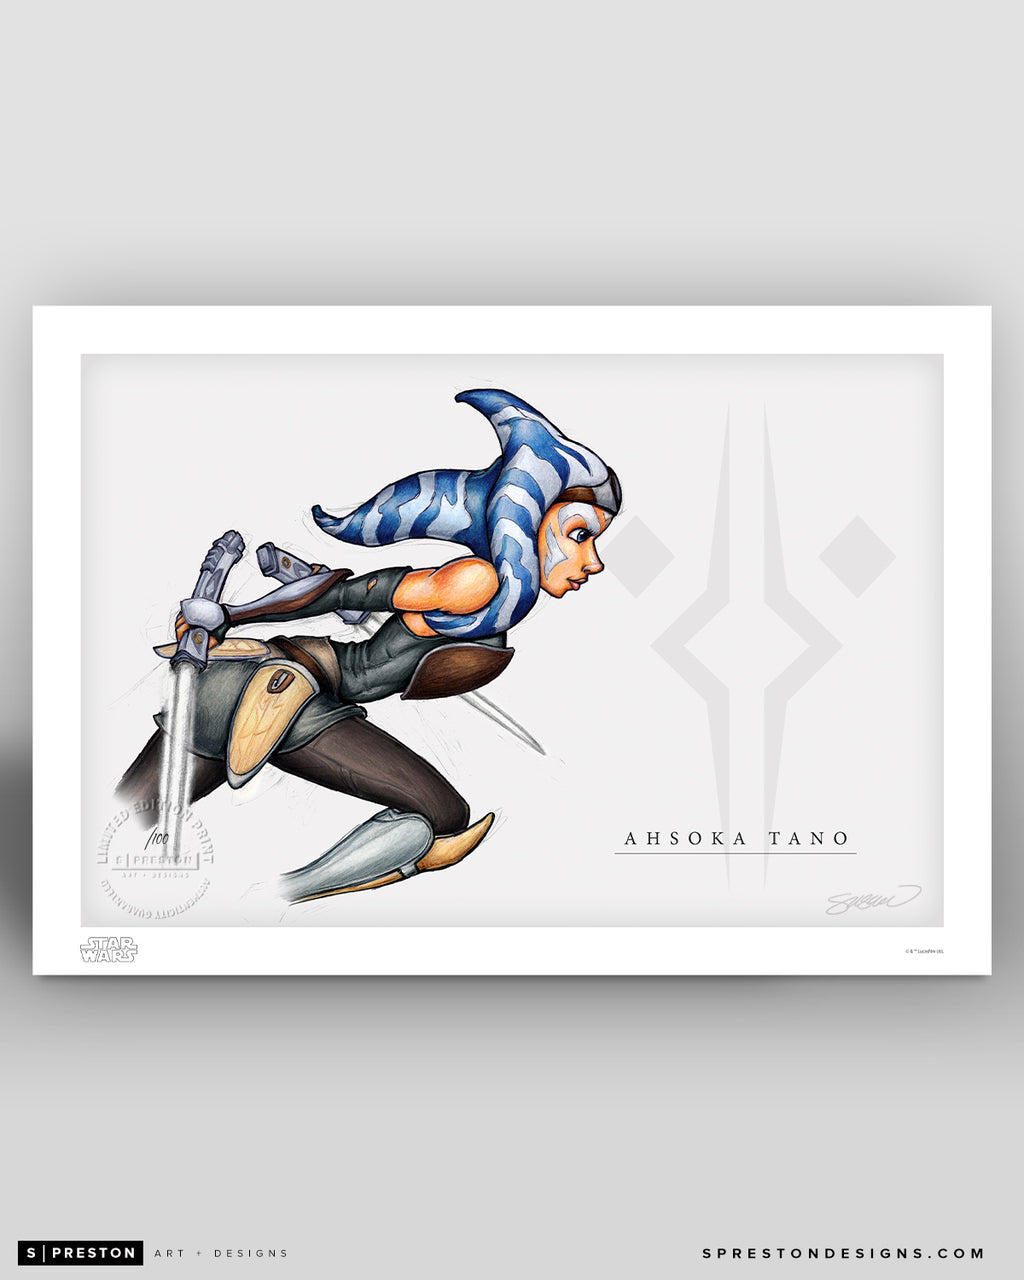 Revenge at Malachor (Ahsoka Tano) Sketch Art Print